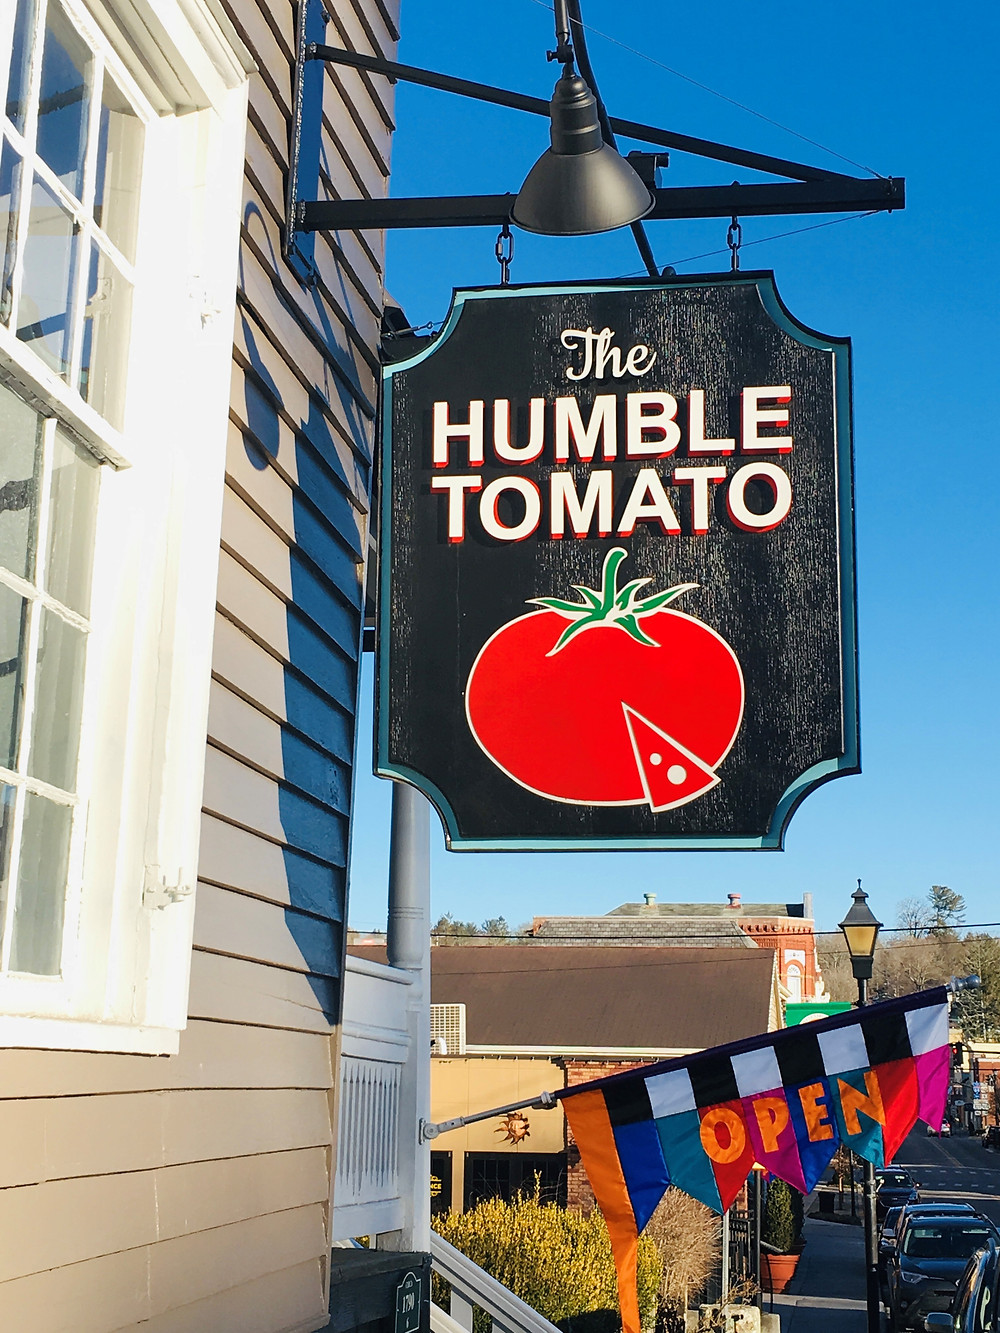 The Humble Tomato in Lewisburg, WV